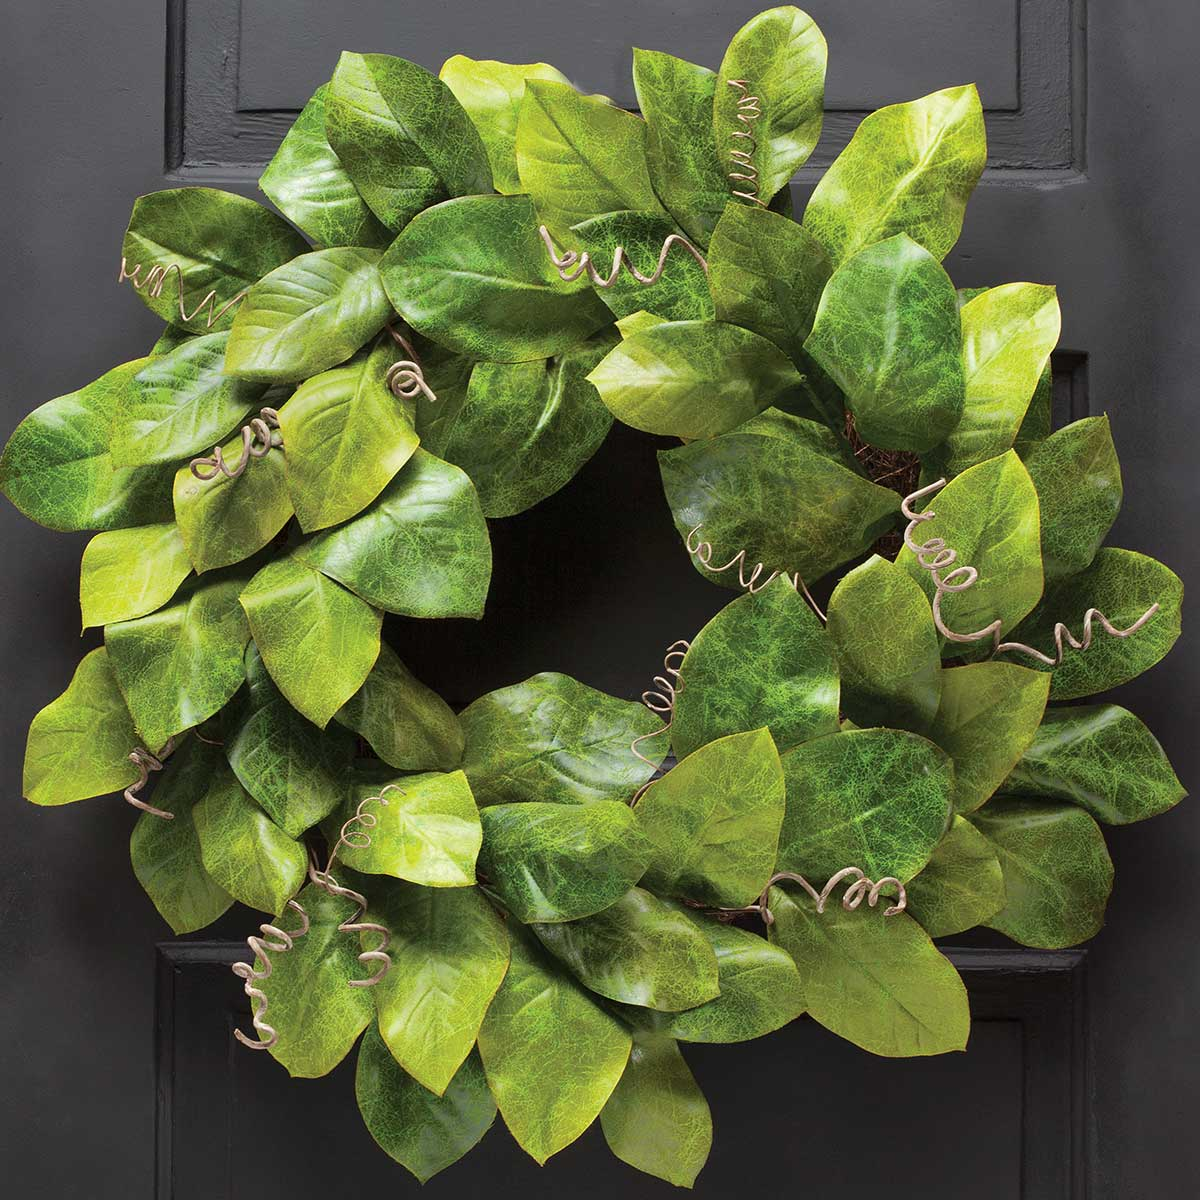 Plantation Magnolia Leaf Wreath 26""